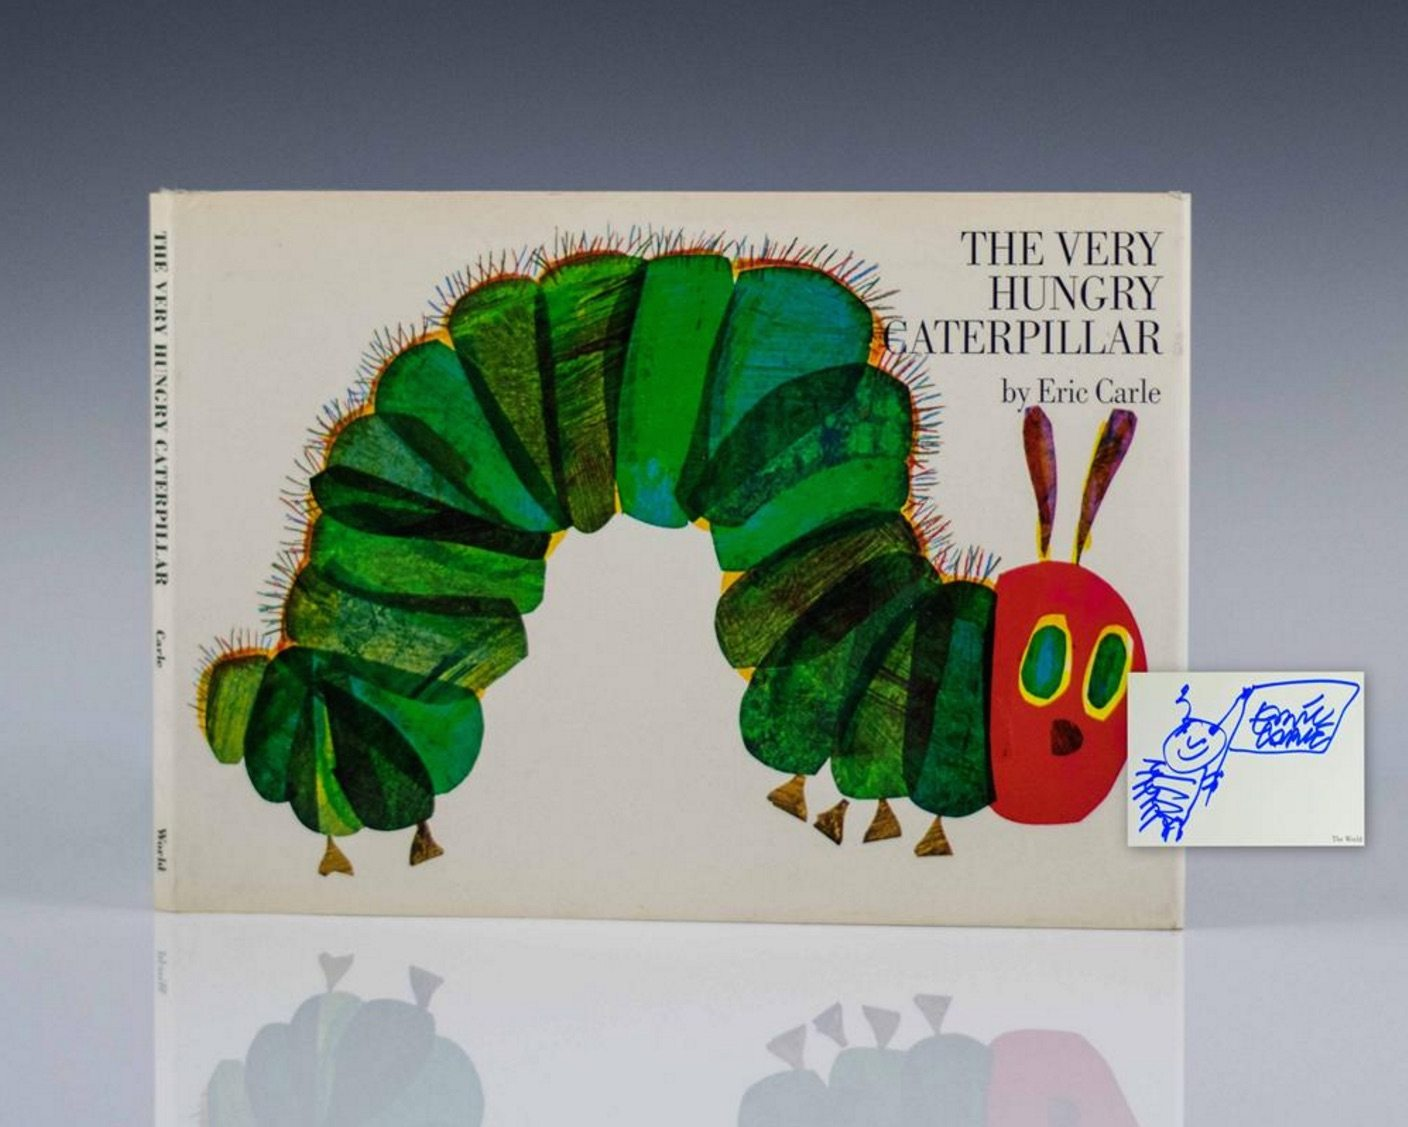 The Very Hungry Caterpillar Rare books